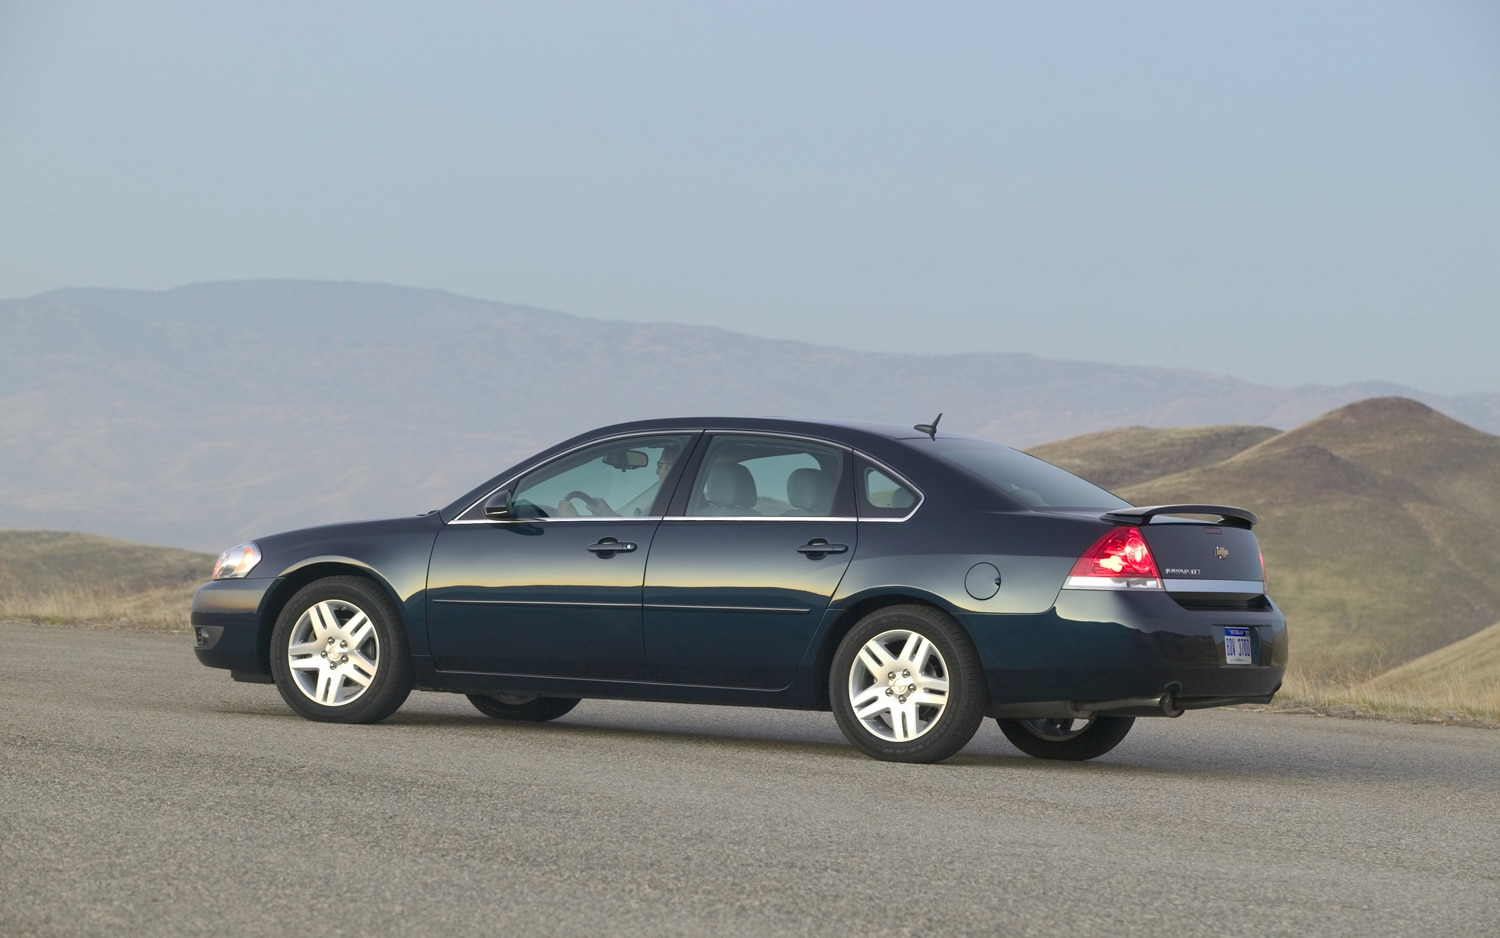 2011 Chevrolet Impala Side View1